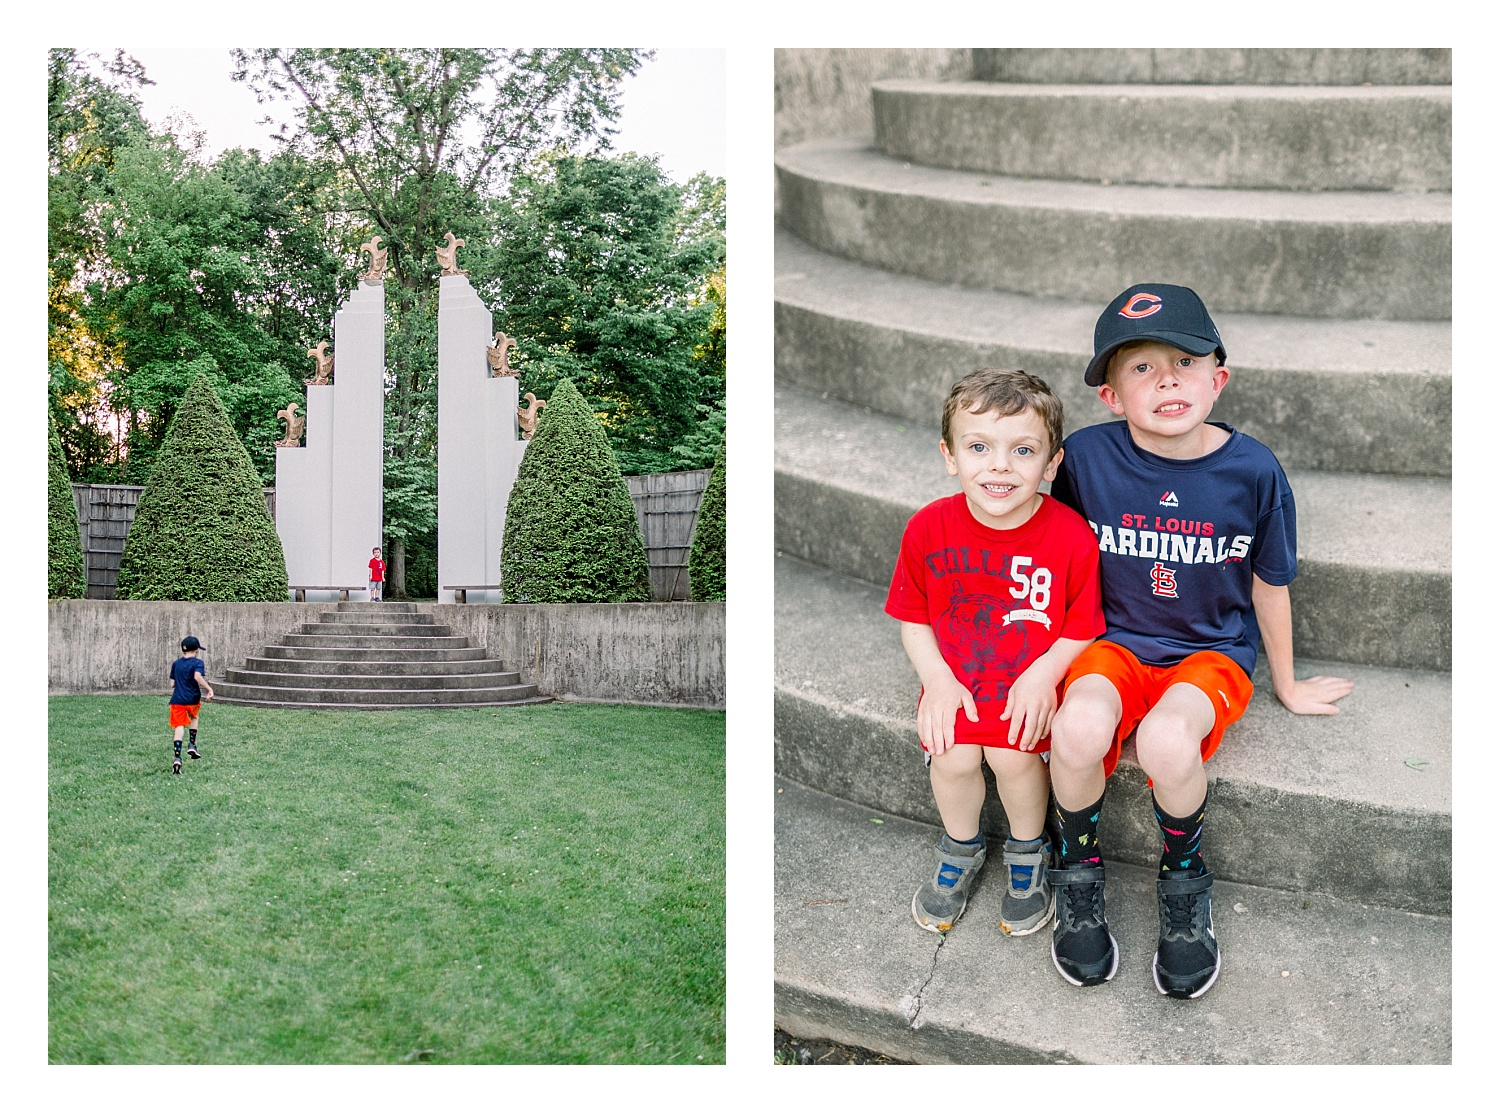 Wisconsin-Family-Photographers-Elle-x-Troy-Photography-The-Bopp-Family-Robert-Allerton-Park-Monticello-Illinois_0010.jpg